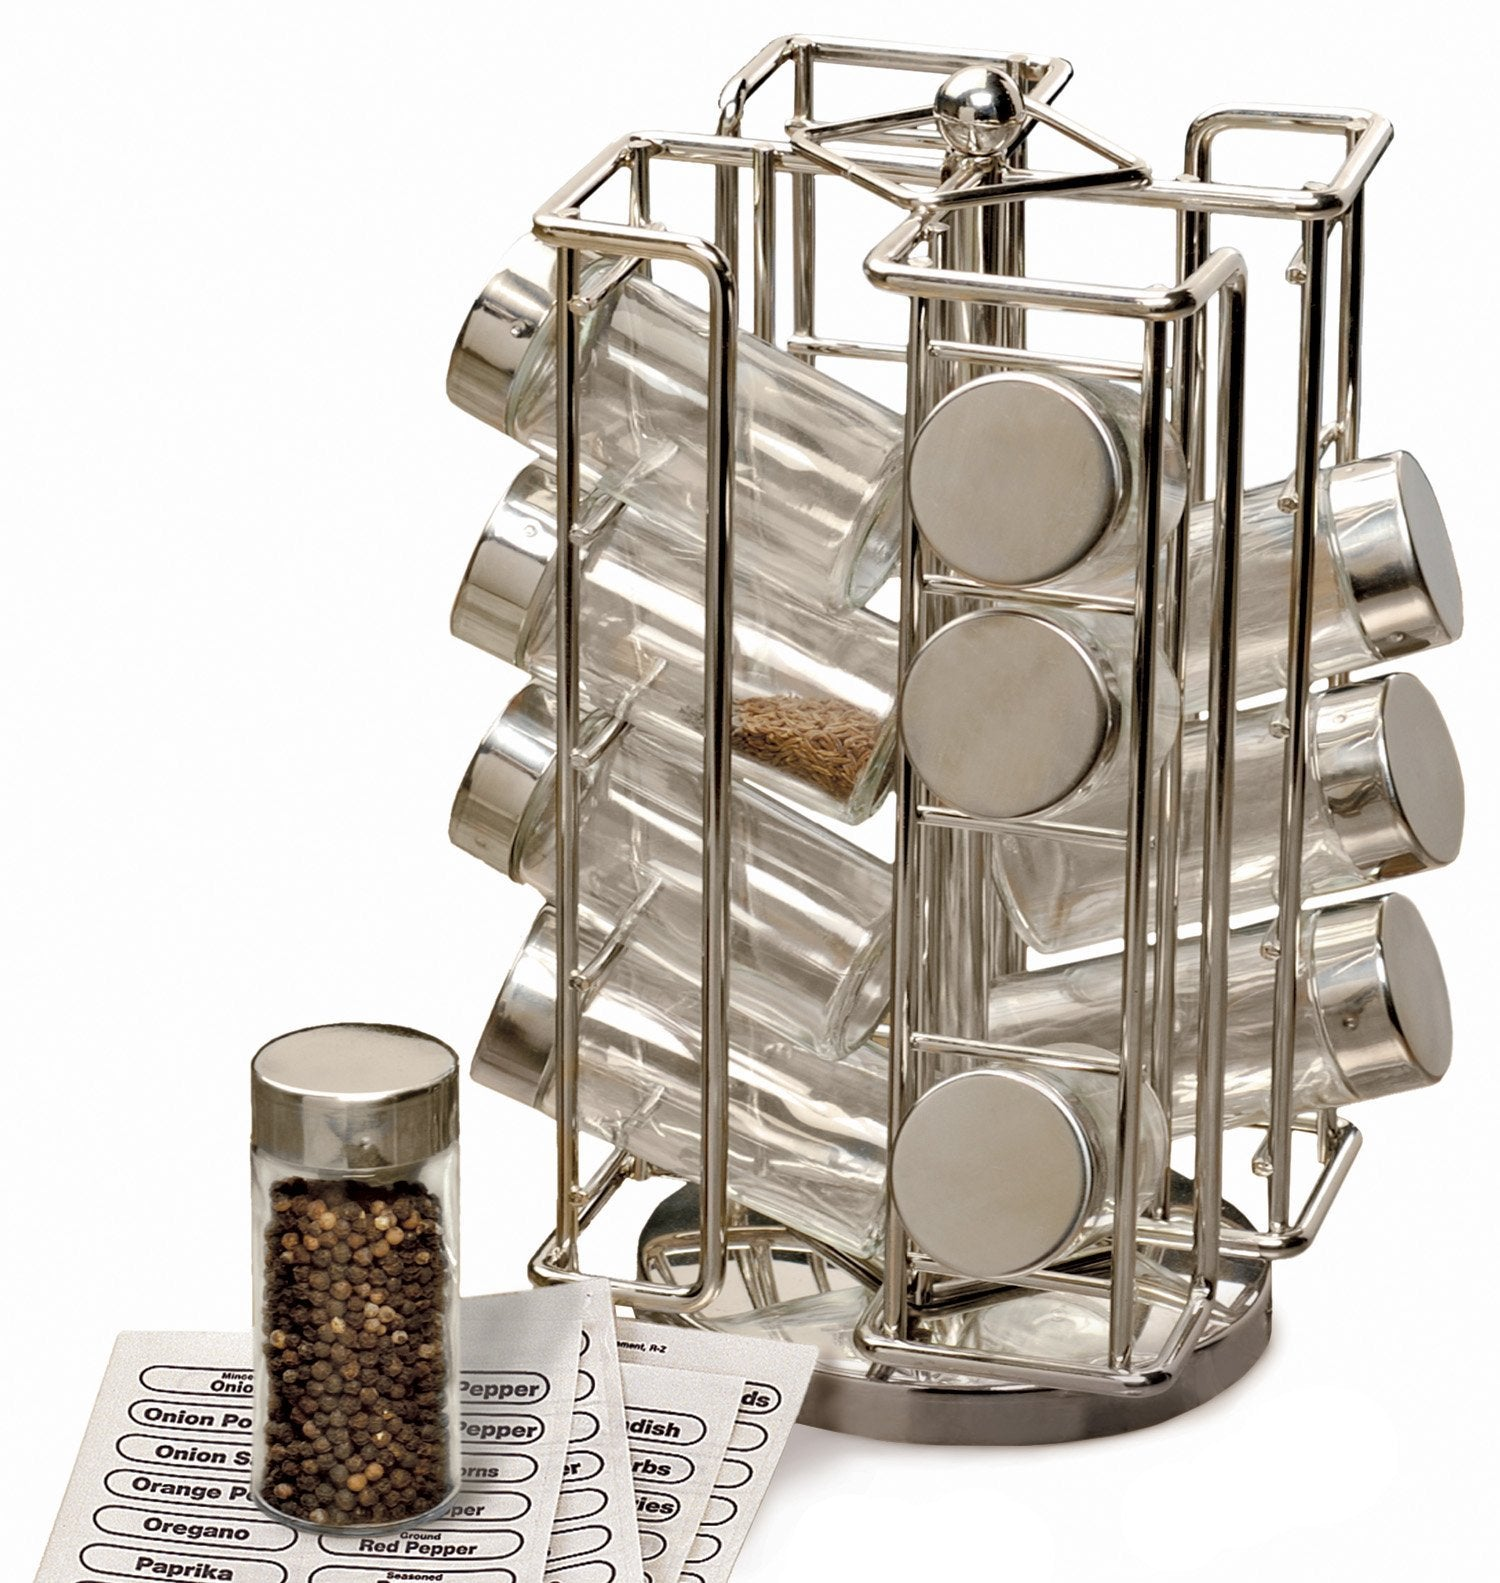 "Spice Rack - Revolving Chrome Spice Rack (6 1/2"" x 6 1/2"" x 11 1/2"")"